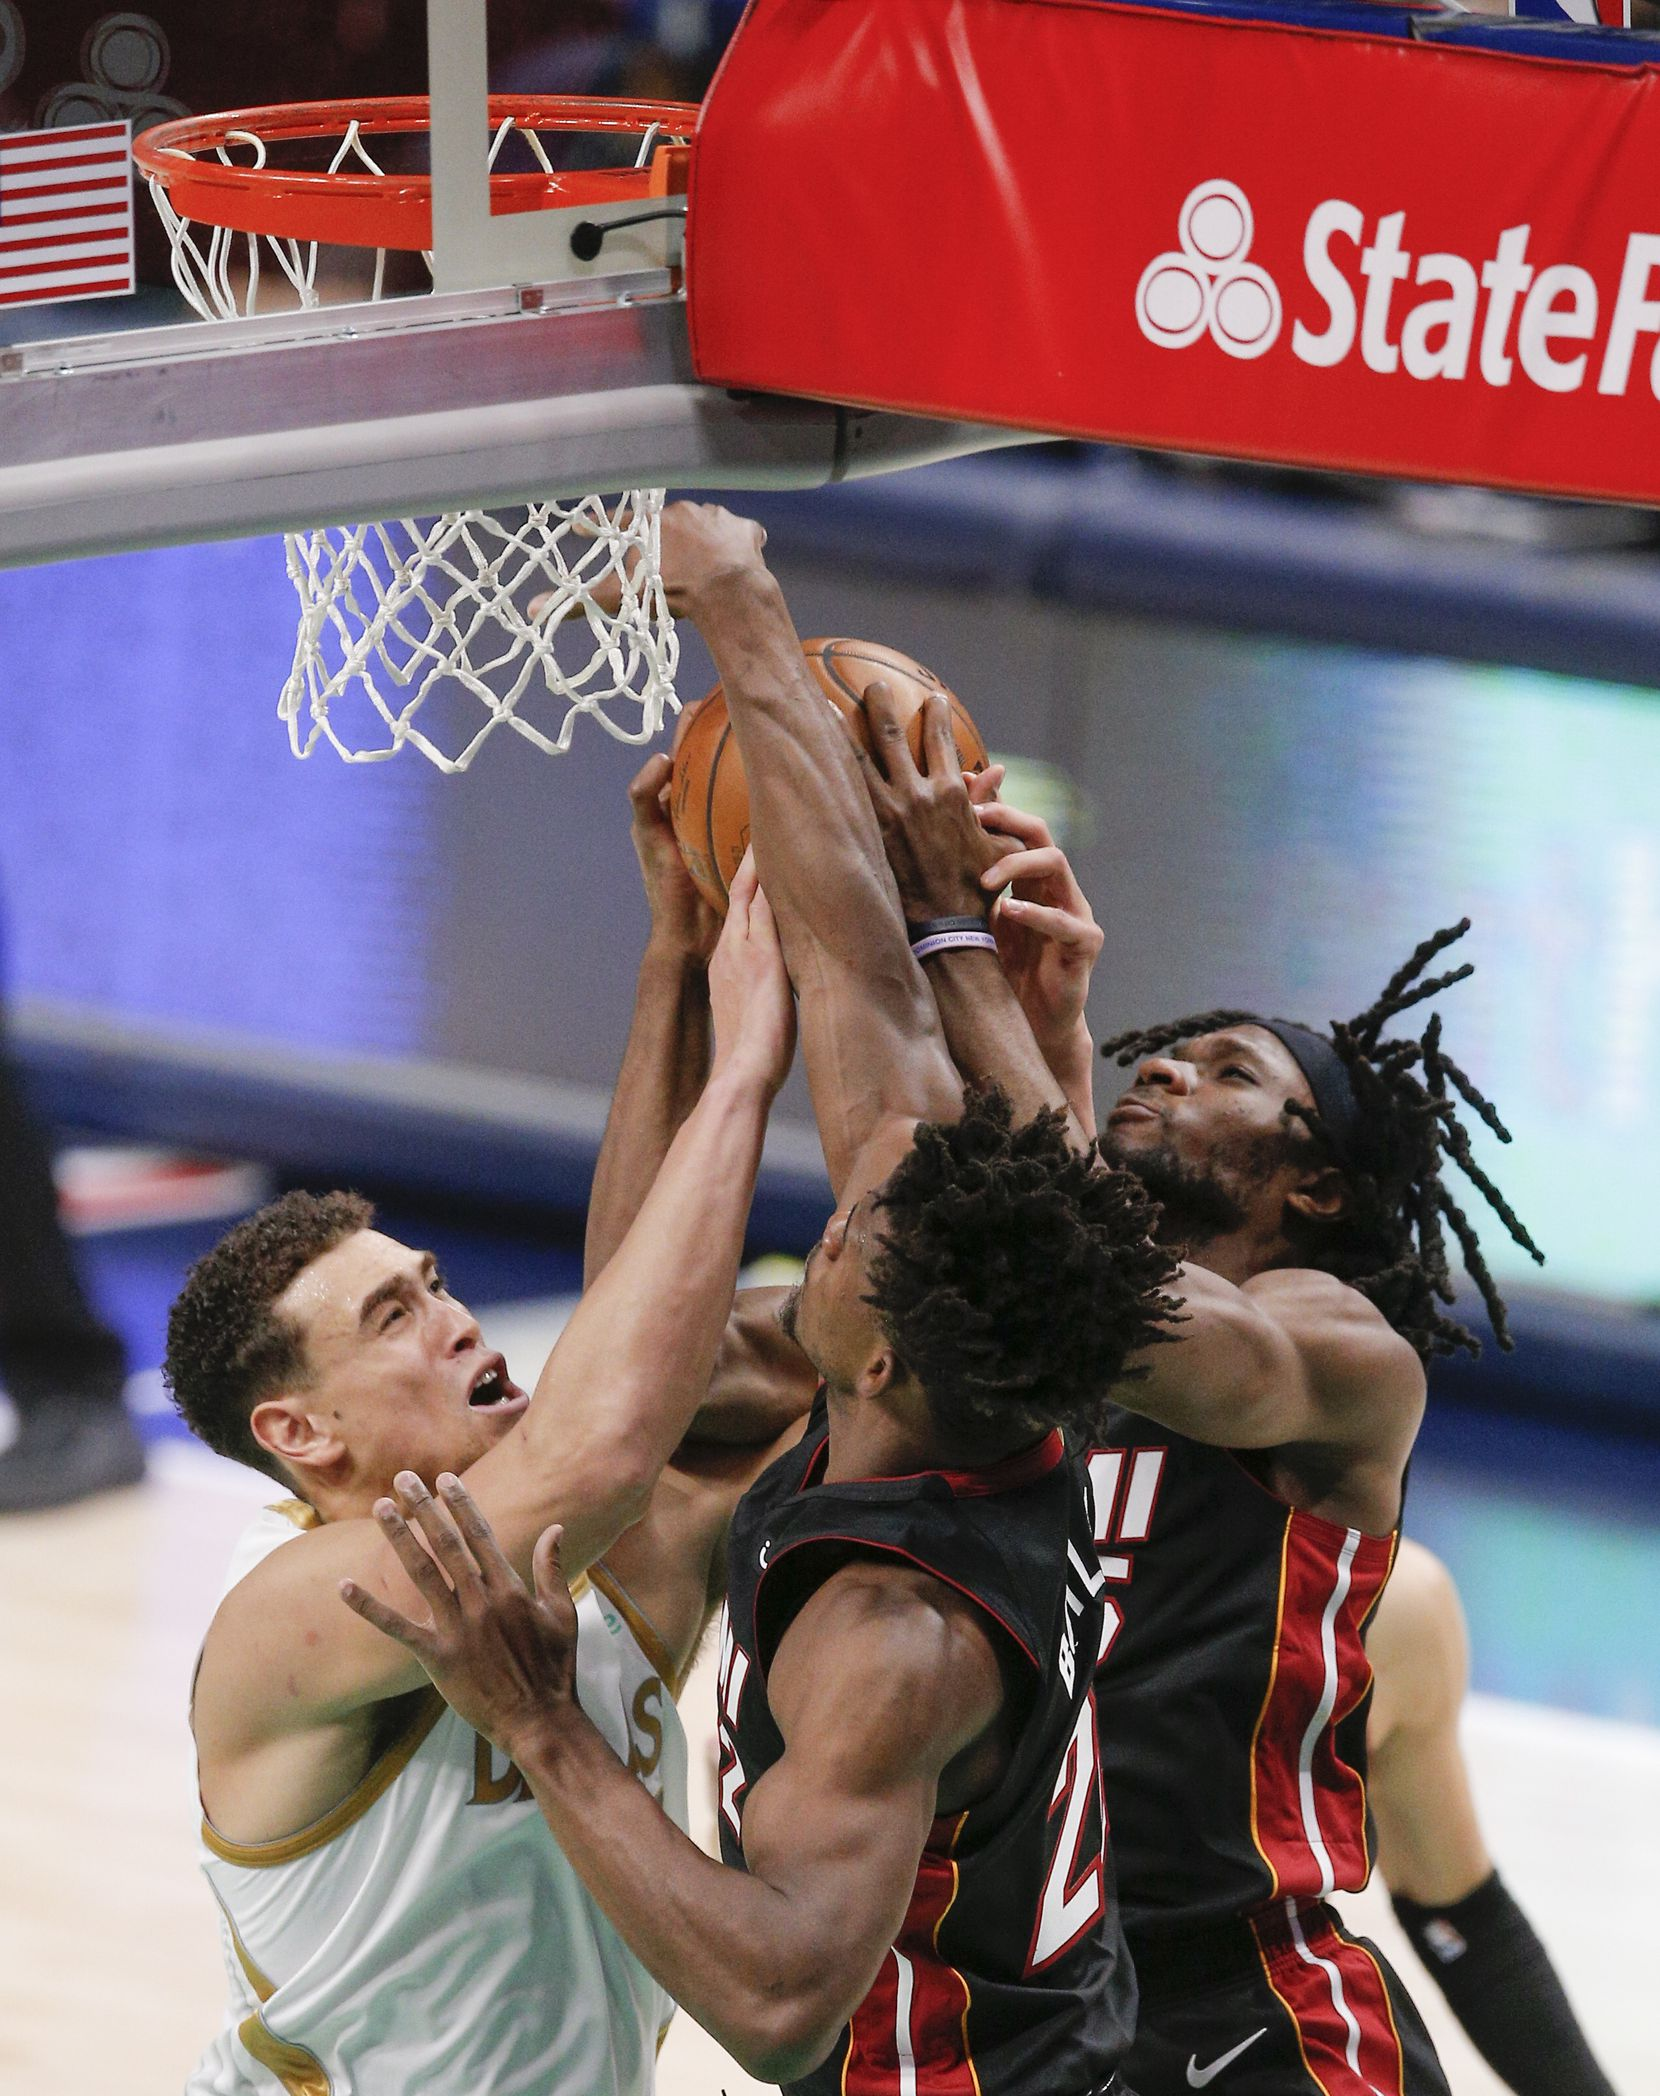 Dallas Mavericks forward Dwight Powell, left, battles Miami Heat forwards Jimmy Butler, and Precious Achiuwa (5) for the ball during the first half of an NBA basketball game, Friday, January 1, 2021. (Brandon Wade/Special Contributor)